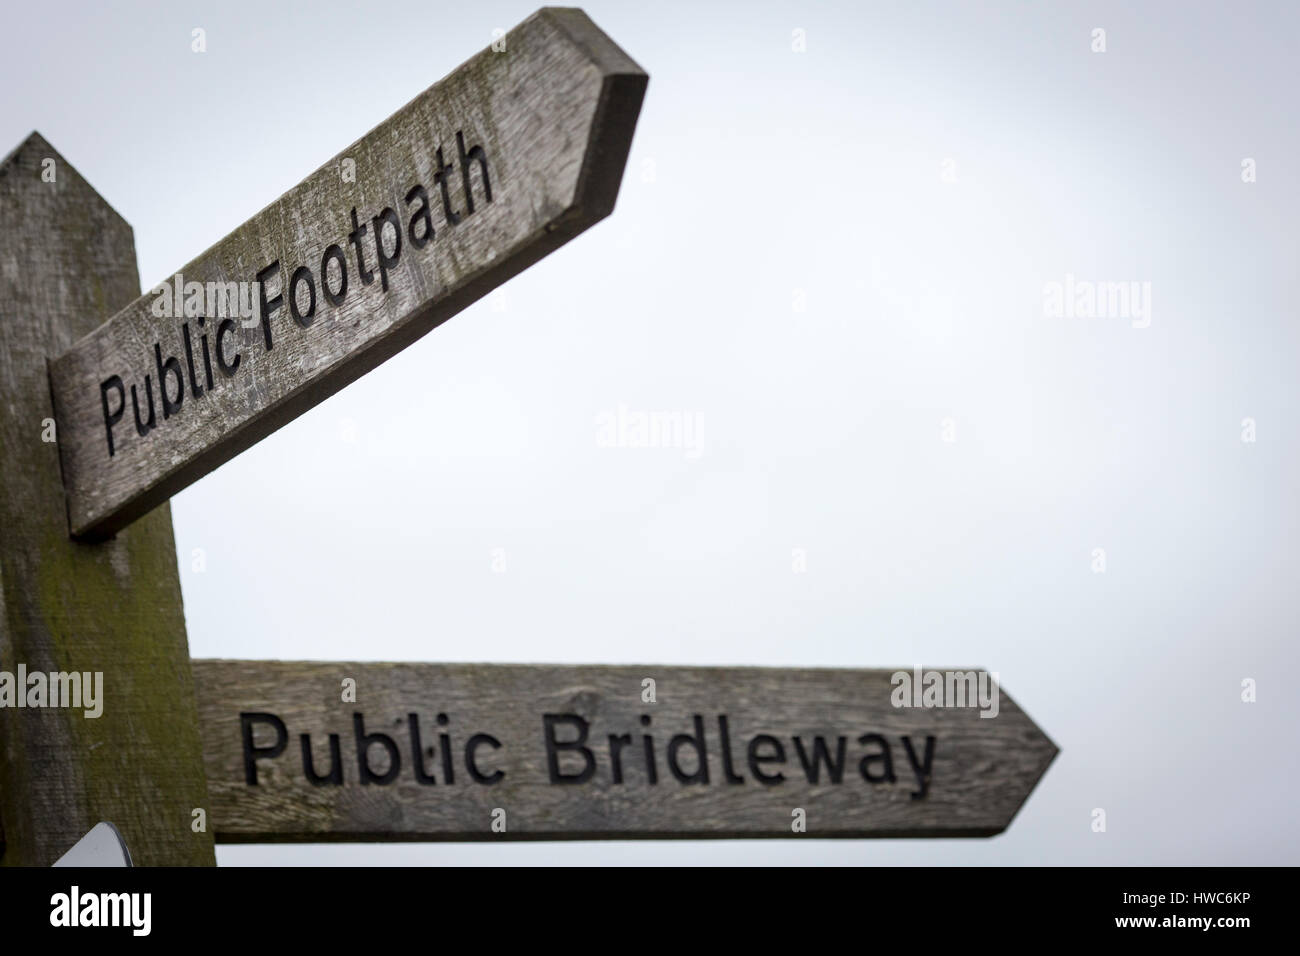 Public bridleway and footpath sign in England - Stock Image